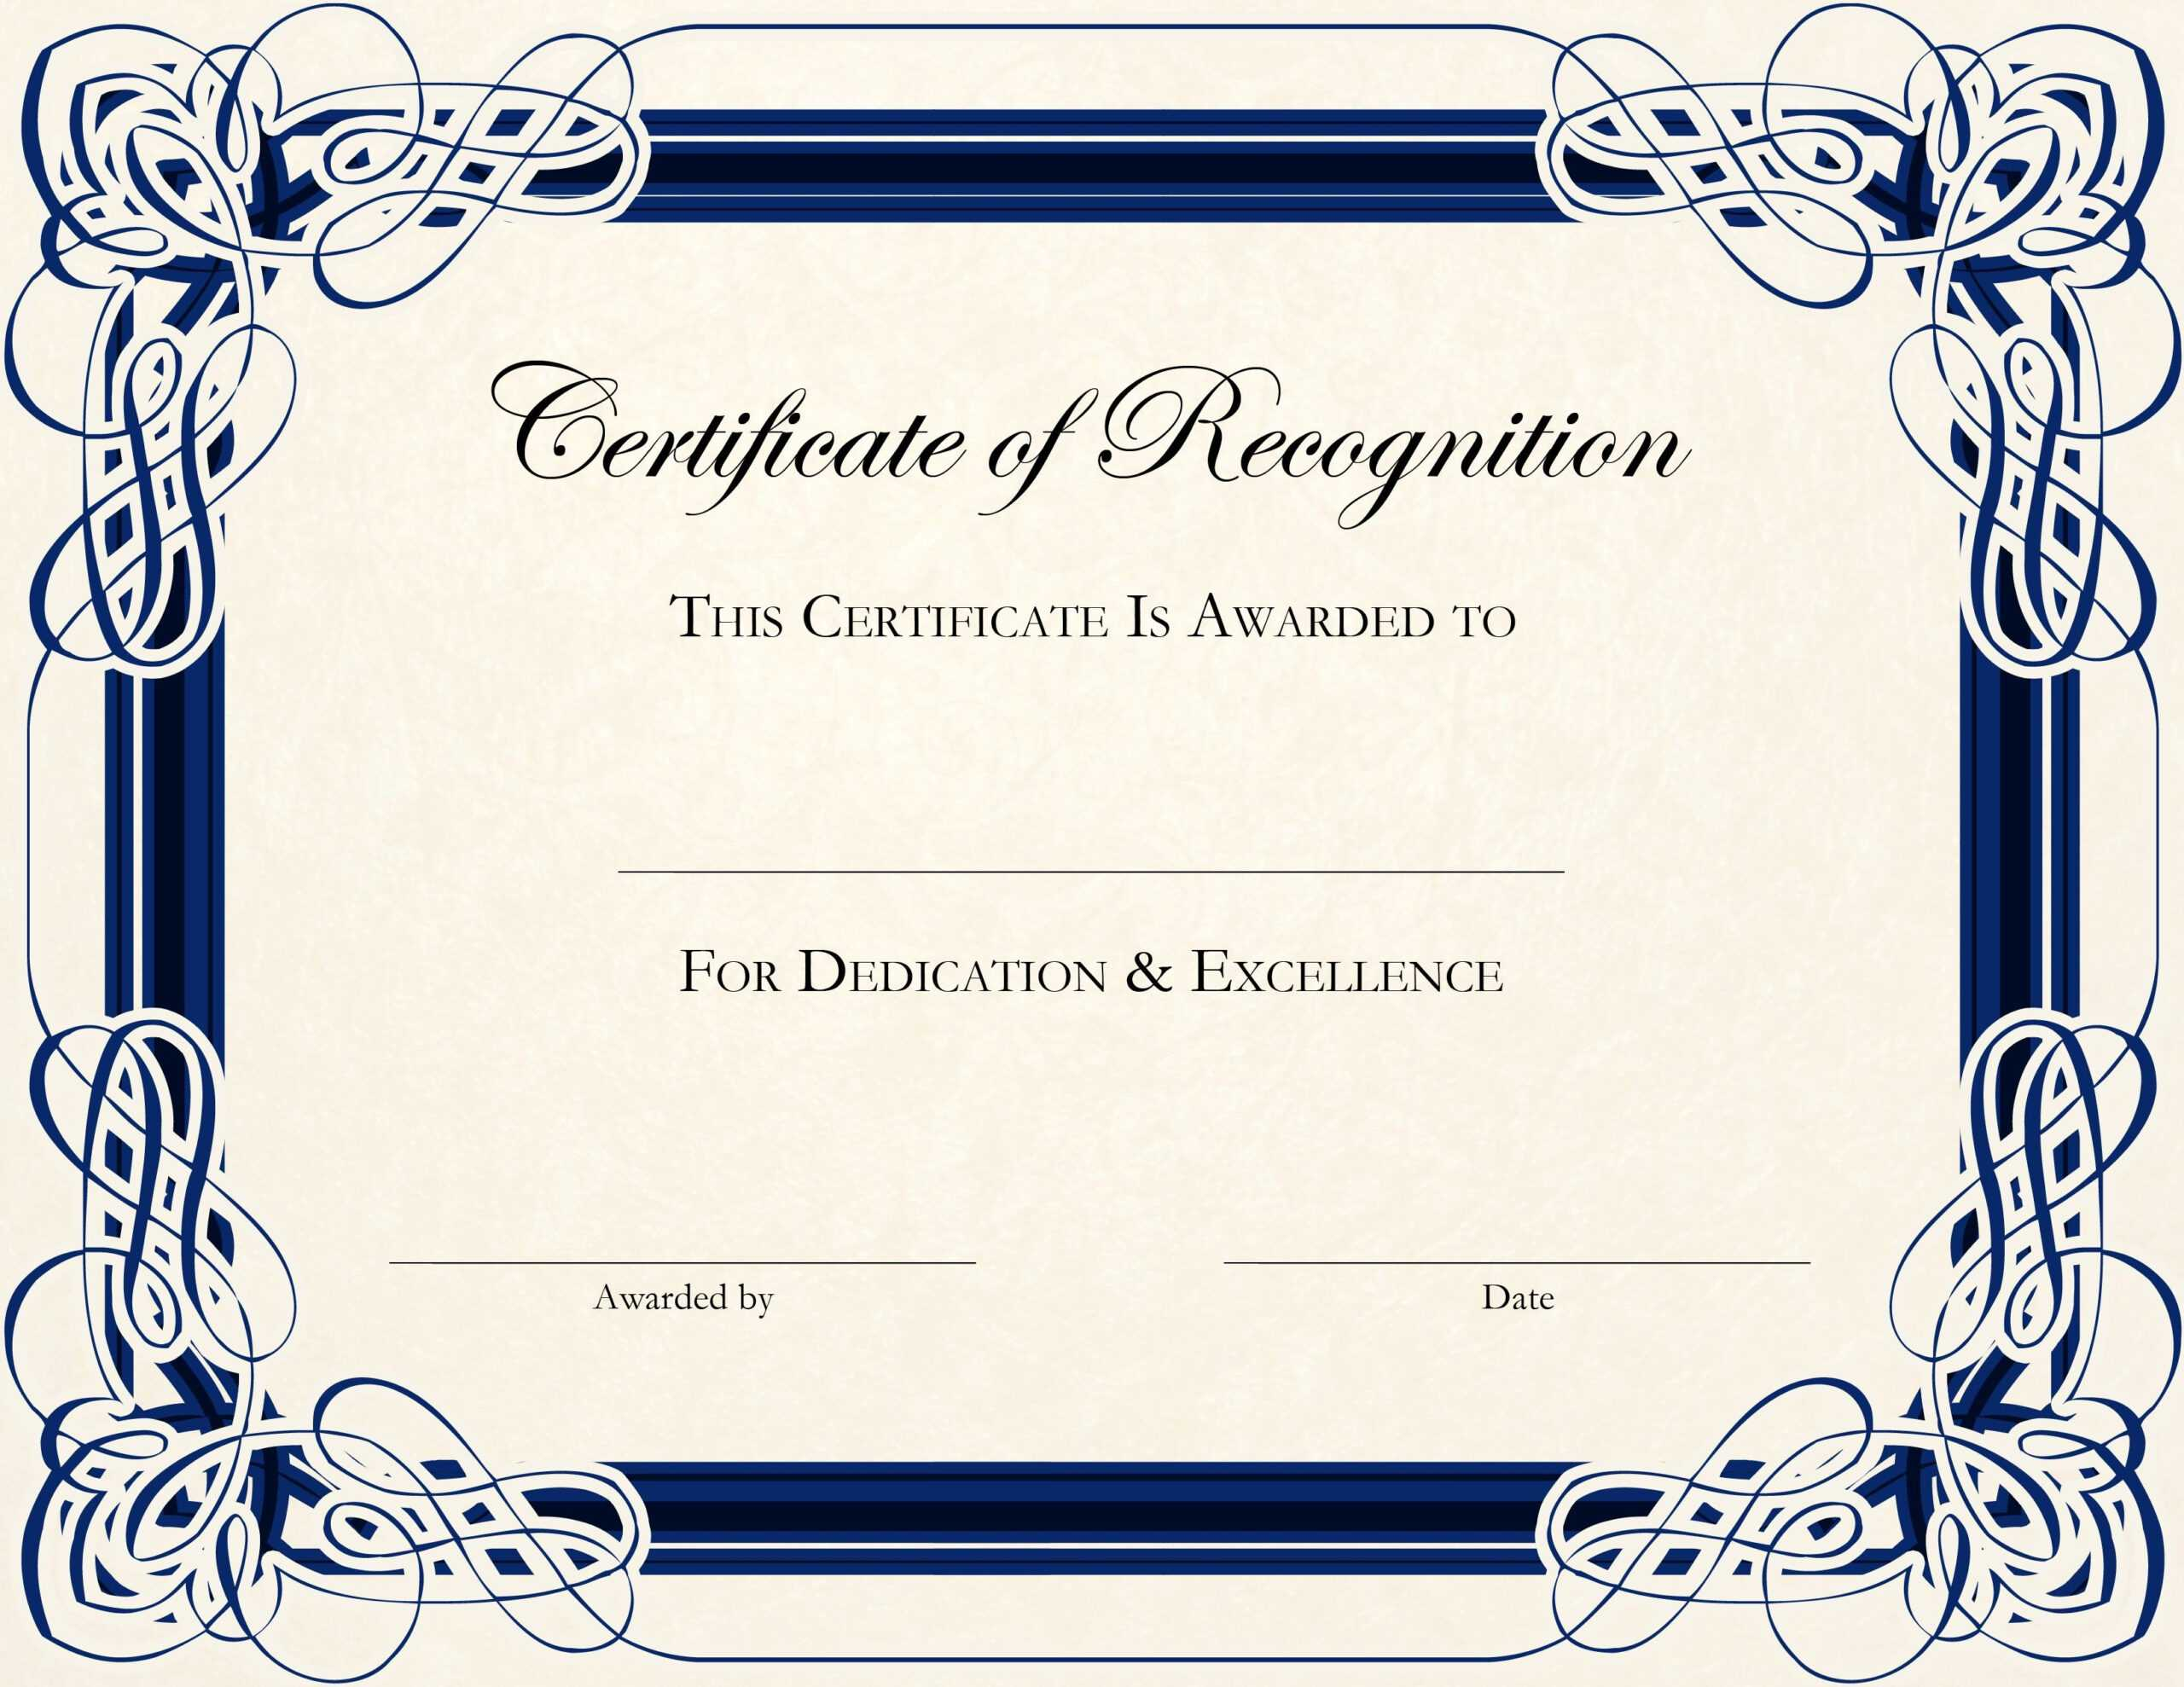 014 Template Ideas Certificate Of Achievement Phenomenal with regard to Free Art Certificate Templates